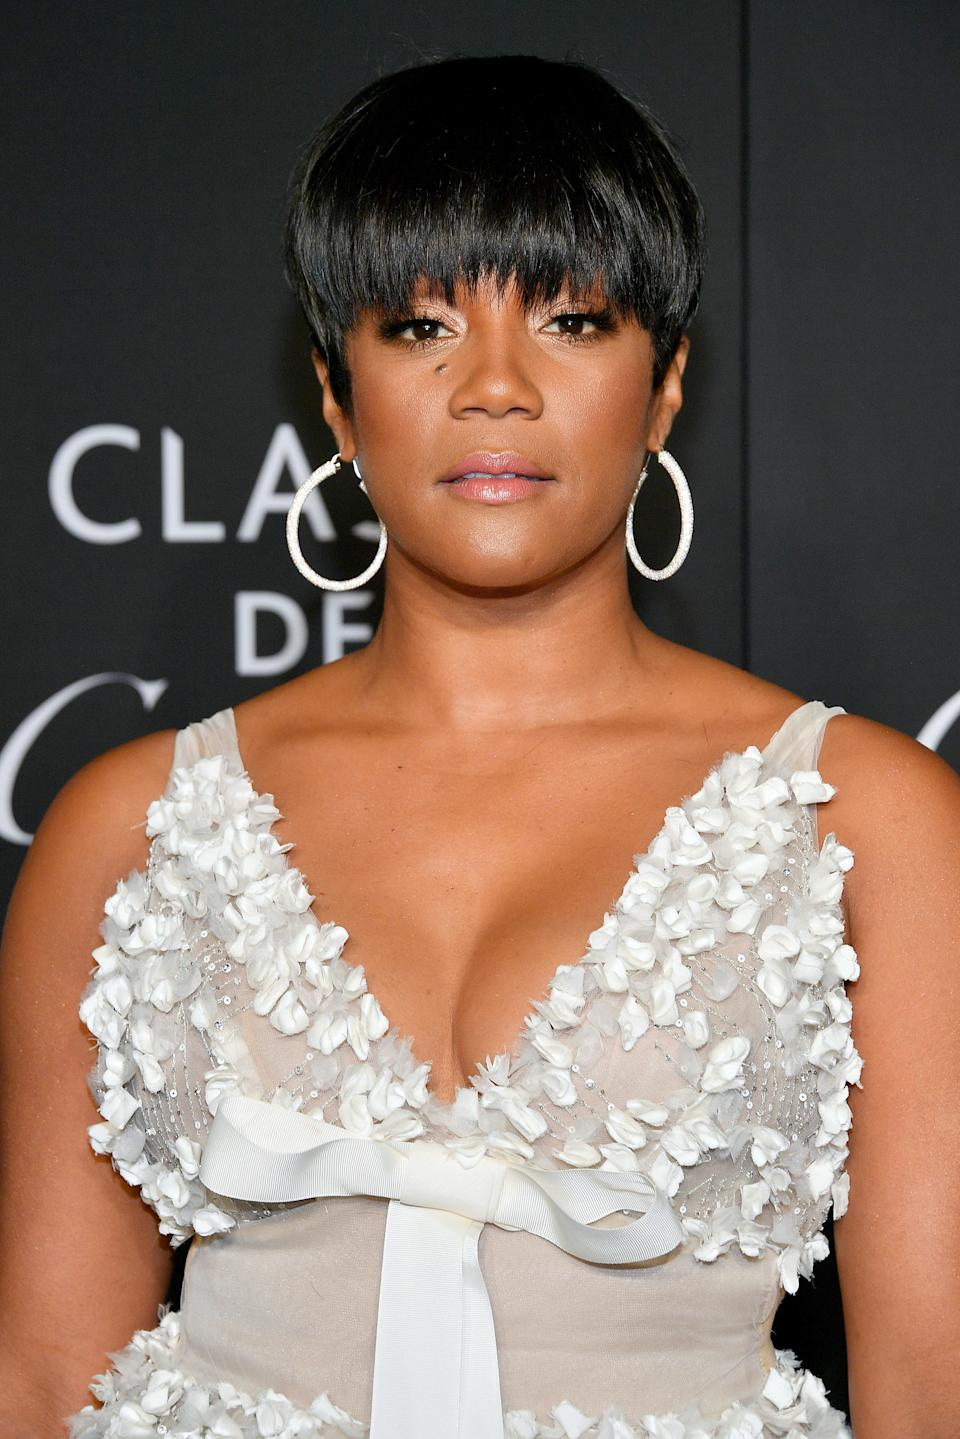 This chic pixie cut is sleek, choppy, and curled under to perfection. The longer length at the temples frames Haddish's face wonderfully.